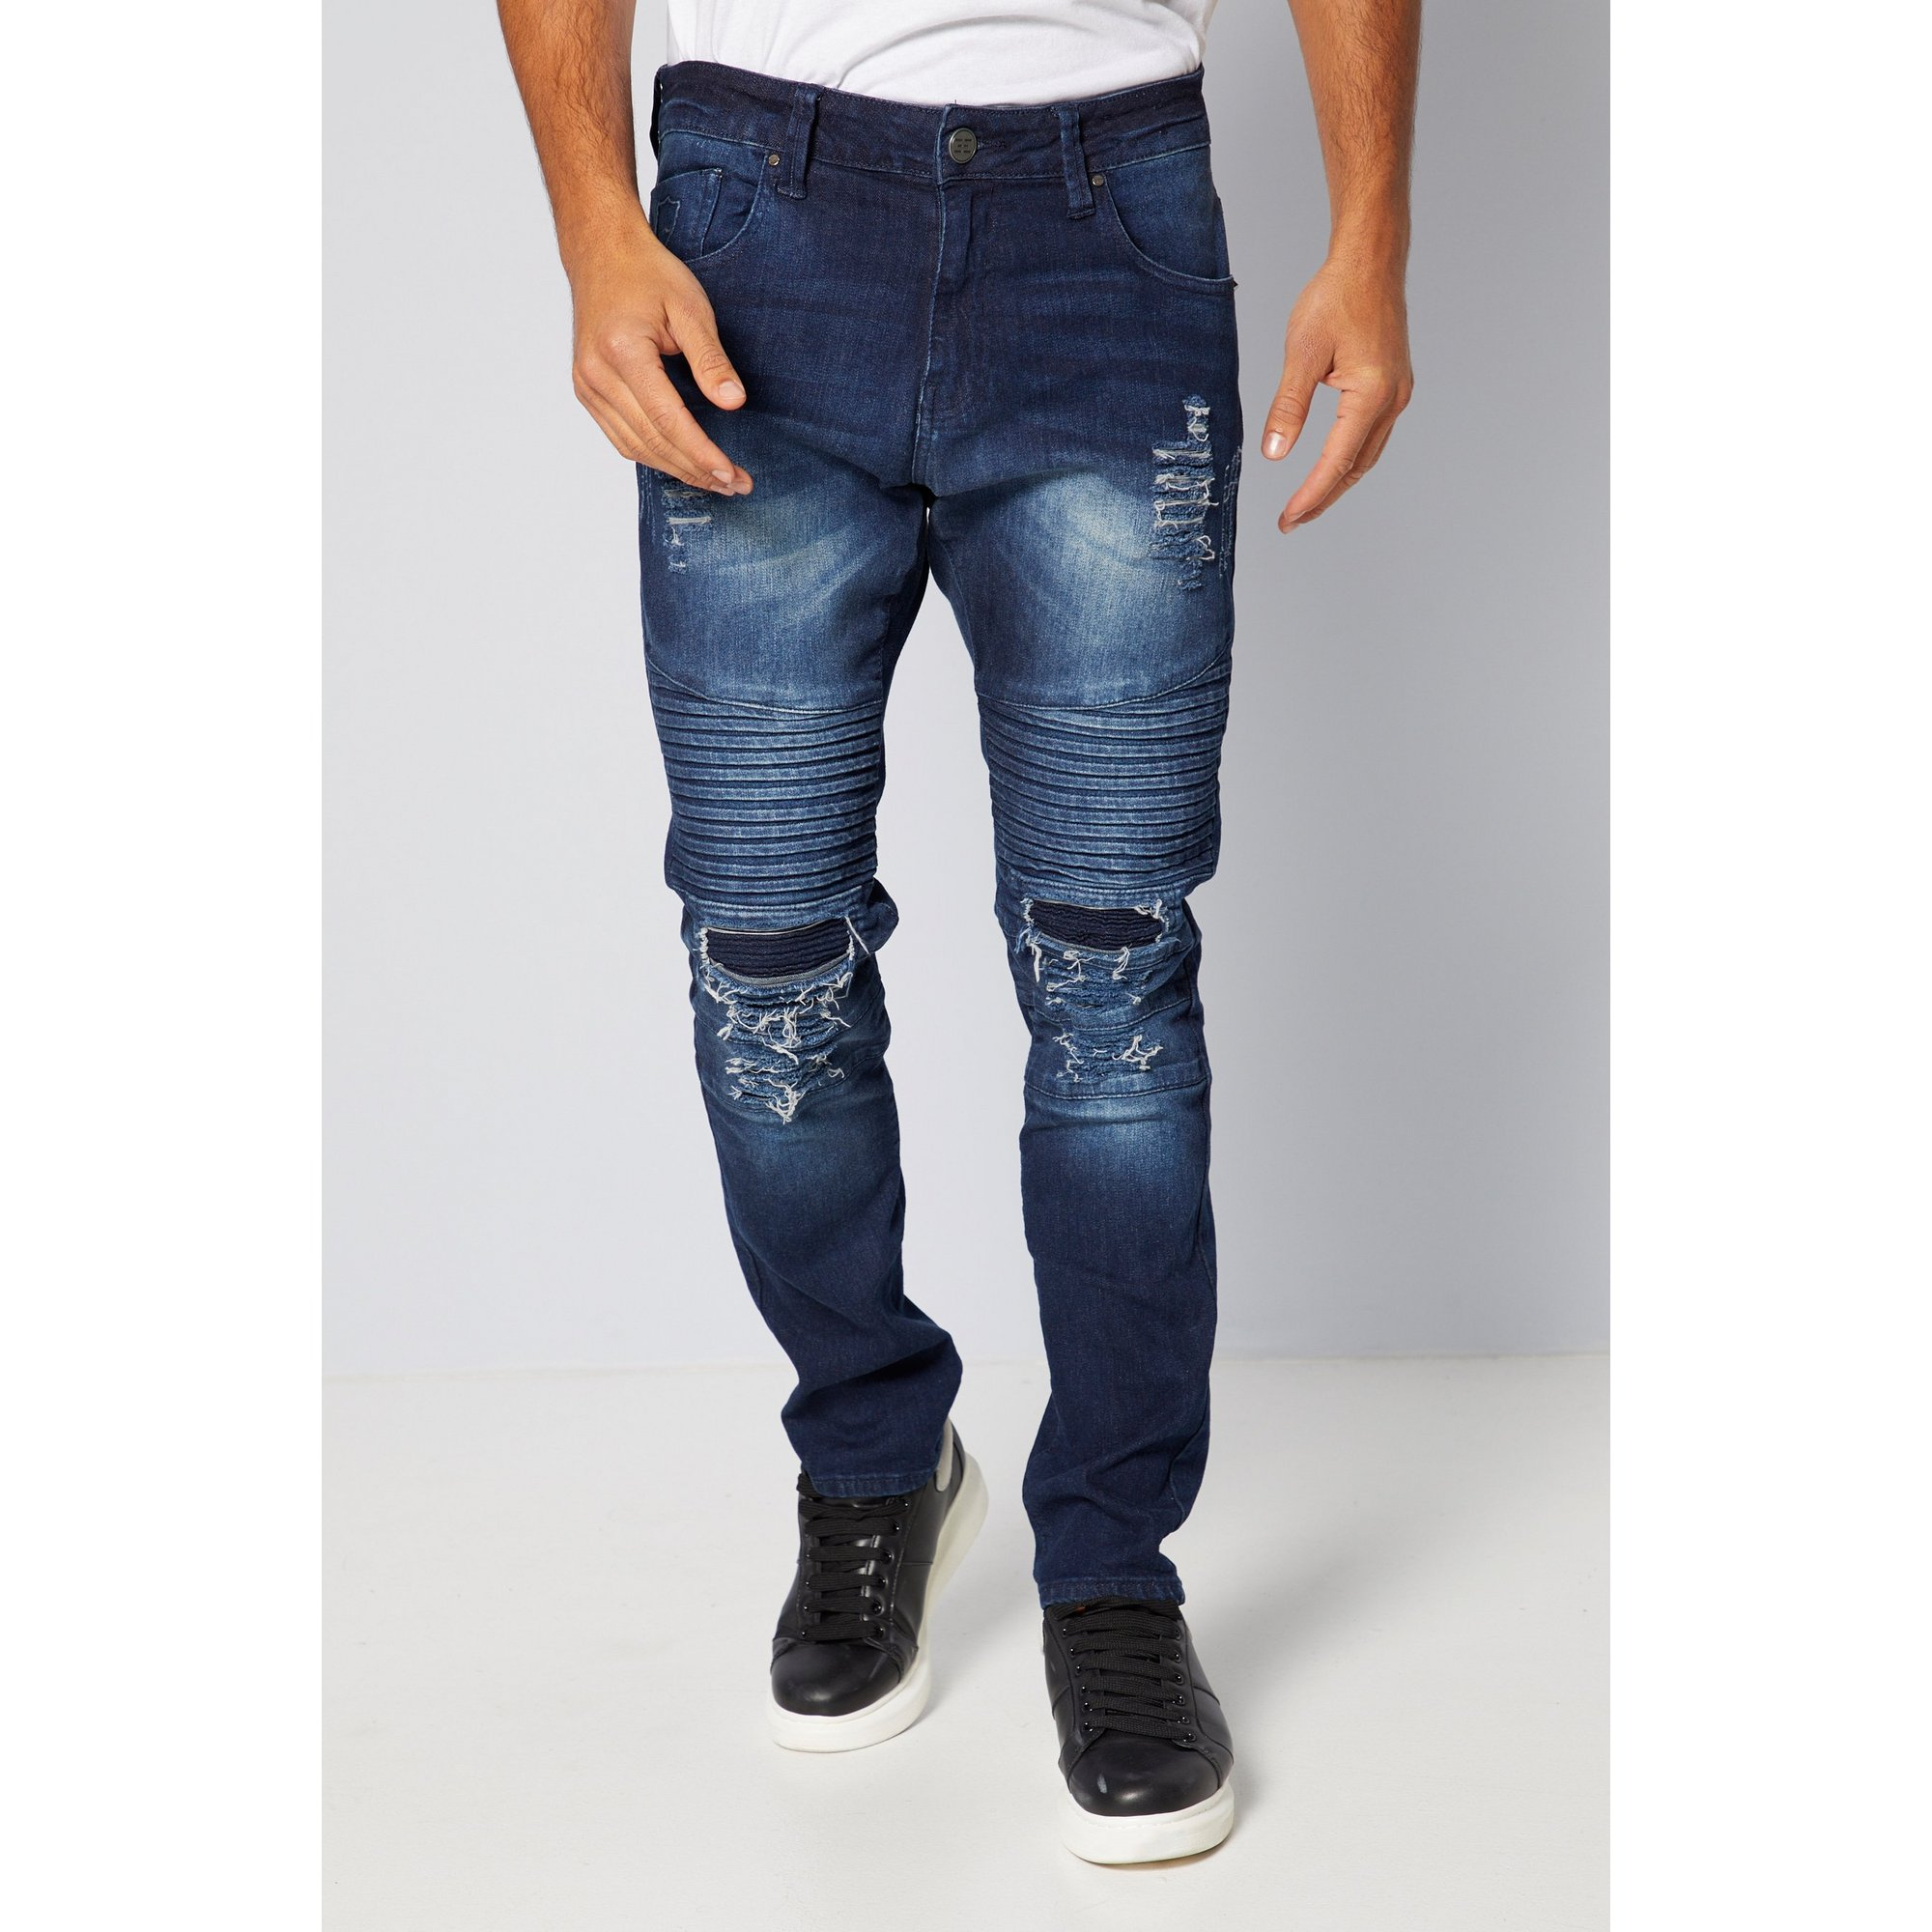 Image of 883 Police Mid Wash Ripped Straight Jeans